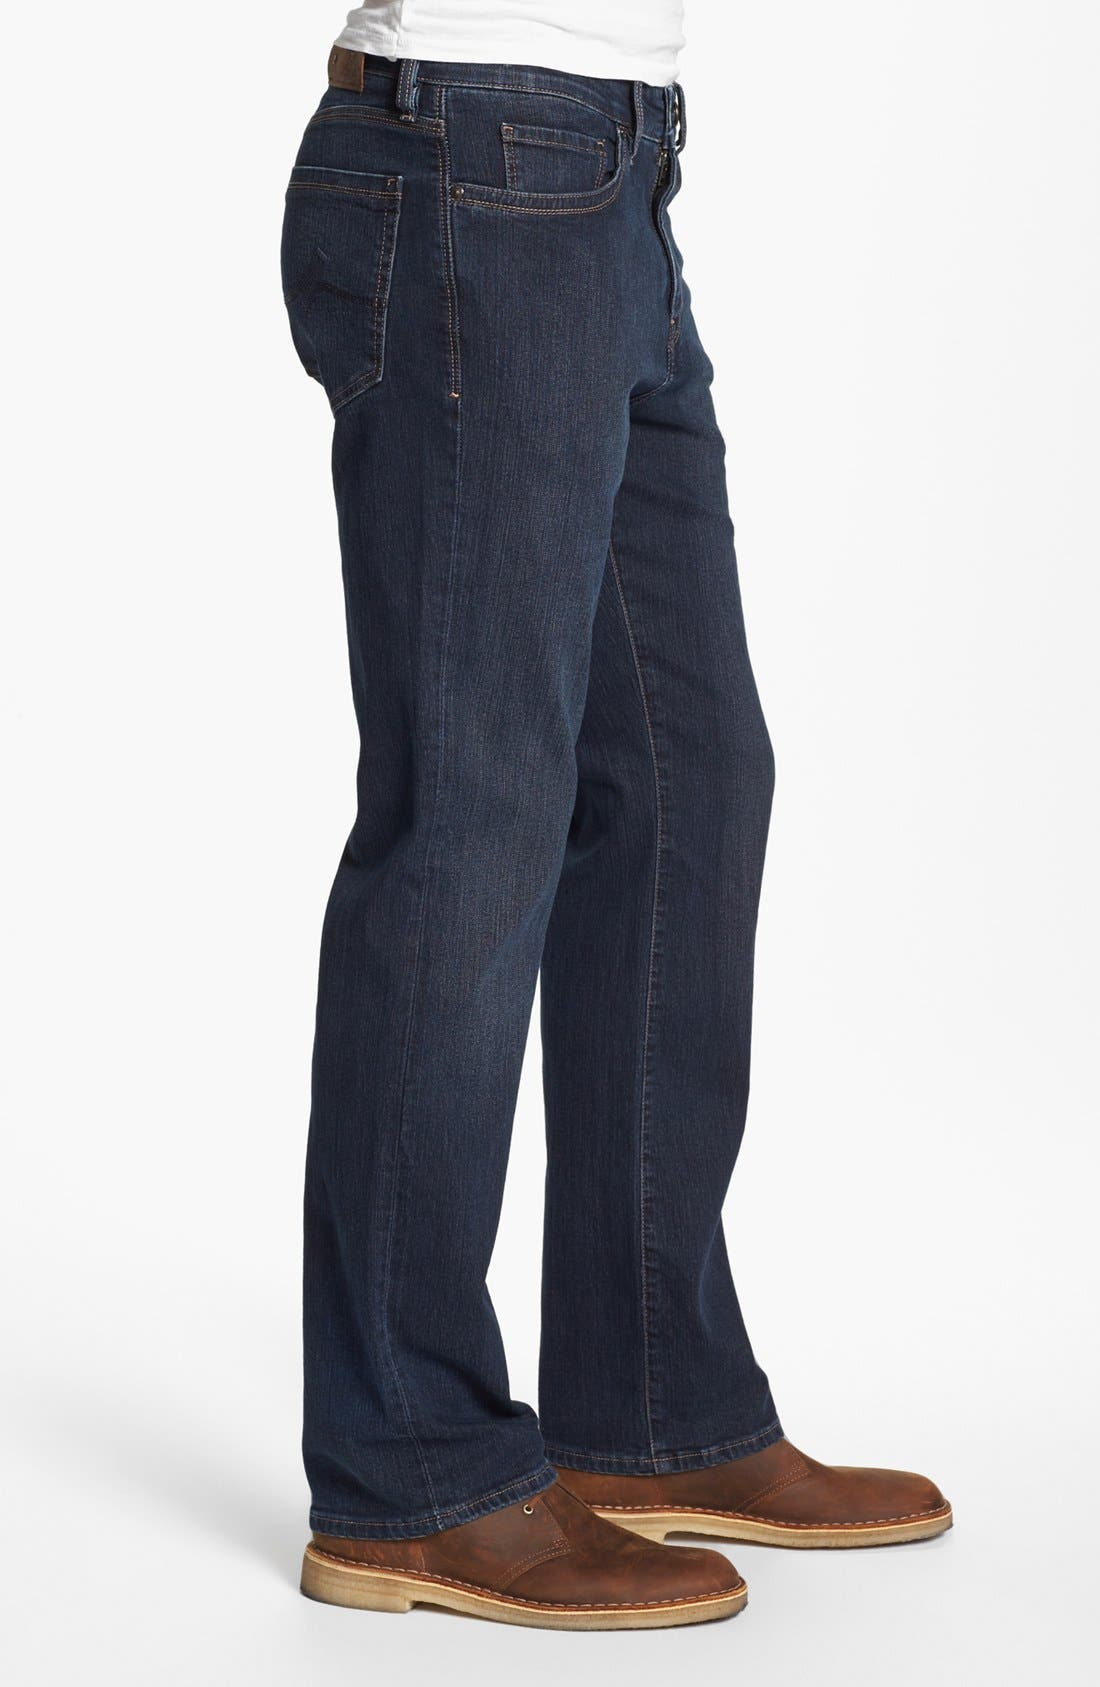 Charisma Relaxed Fit Jeans,                             Alternate thumbnail 5, color,                             DARK COMFORT